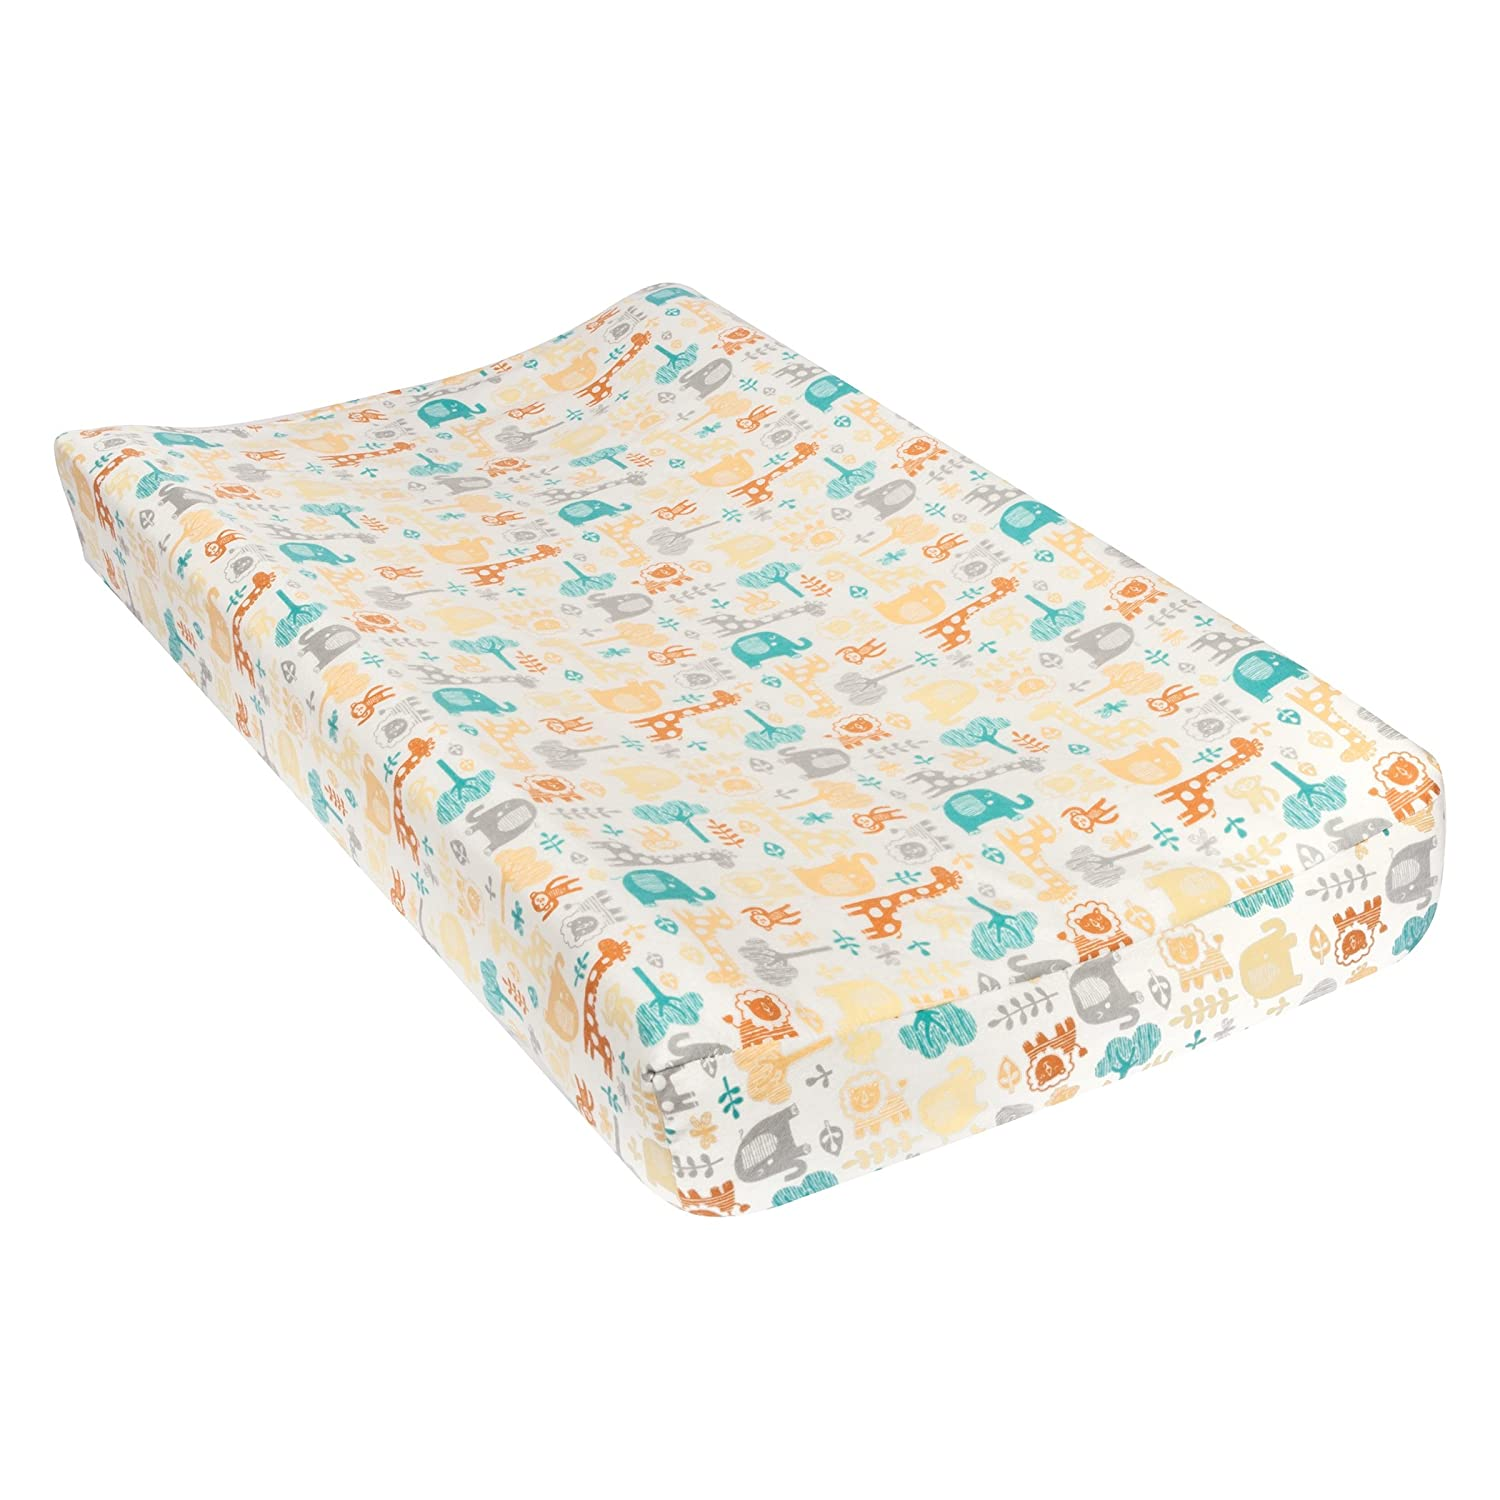 Trend Lab Lullaby Zoo Deluxe Flannel Changing Pad Cover 101617